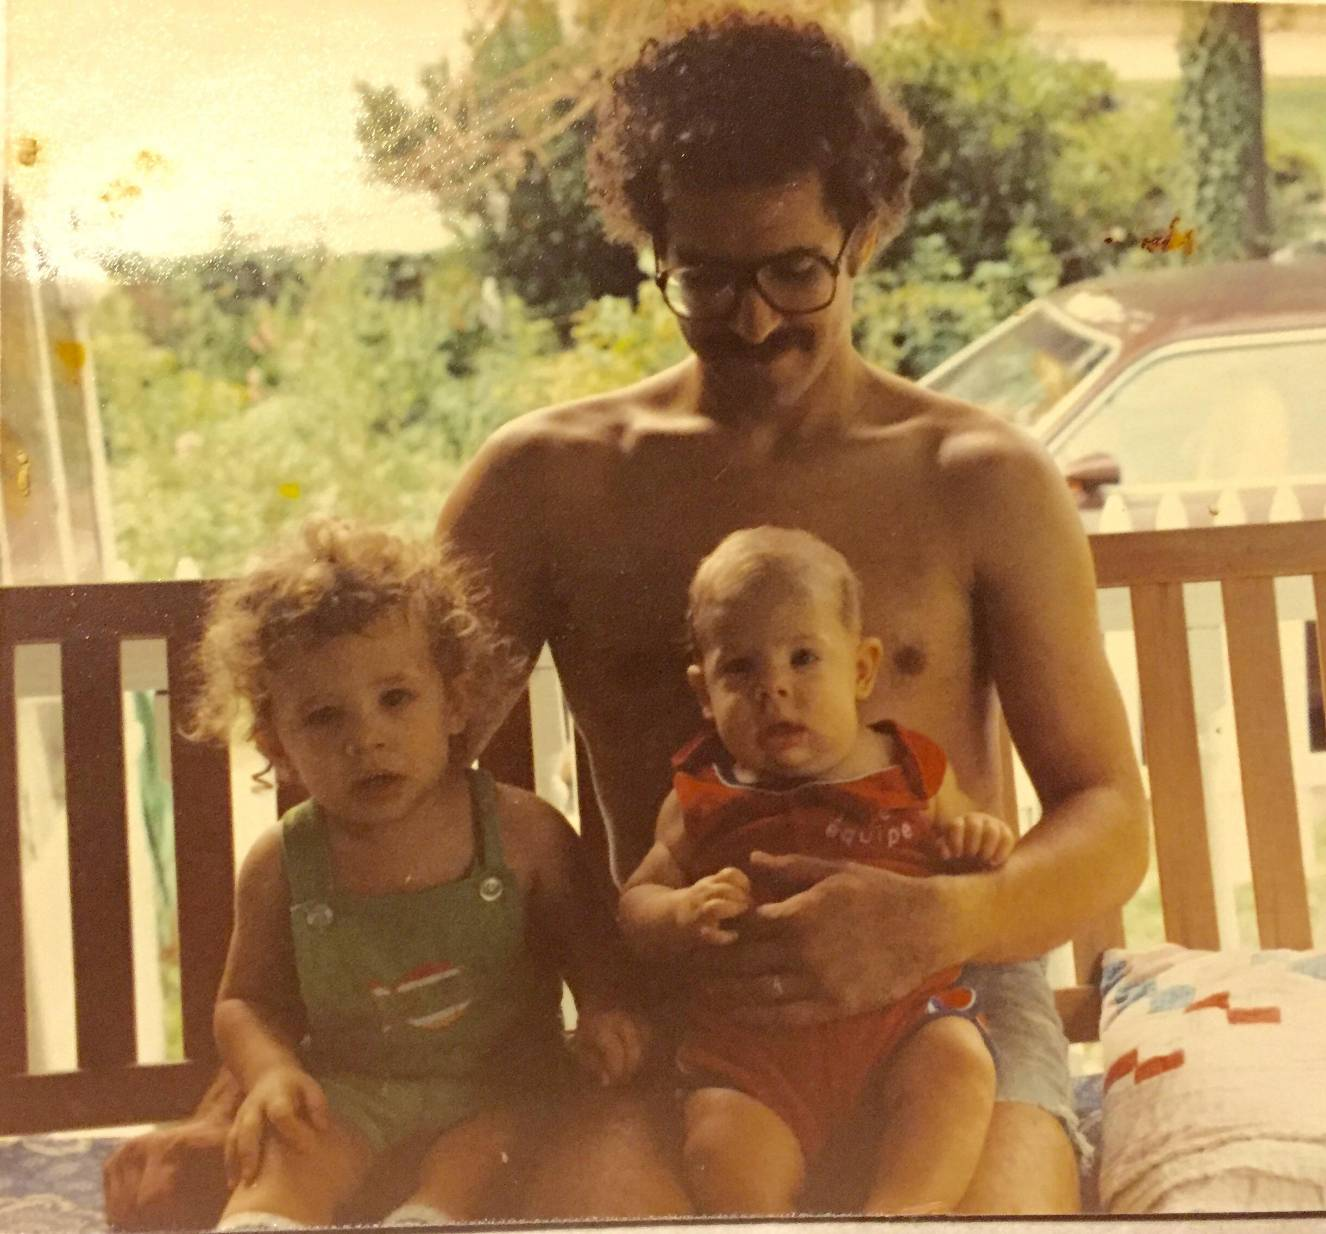 Dan, Matt & Nate on front porch on Dill Road, South Euclid, OH in the summer of 1981.